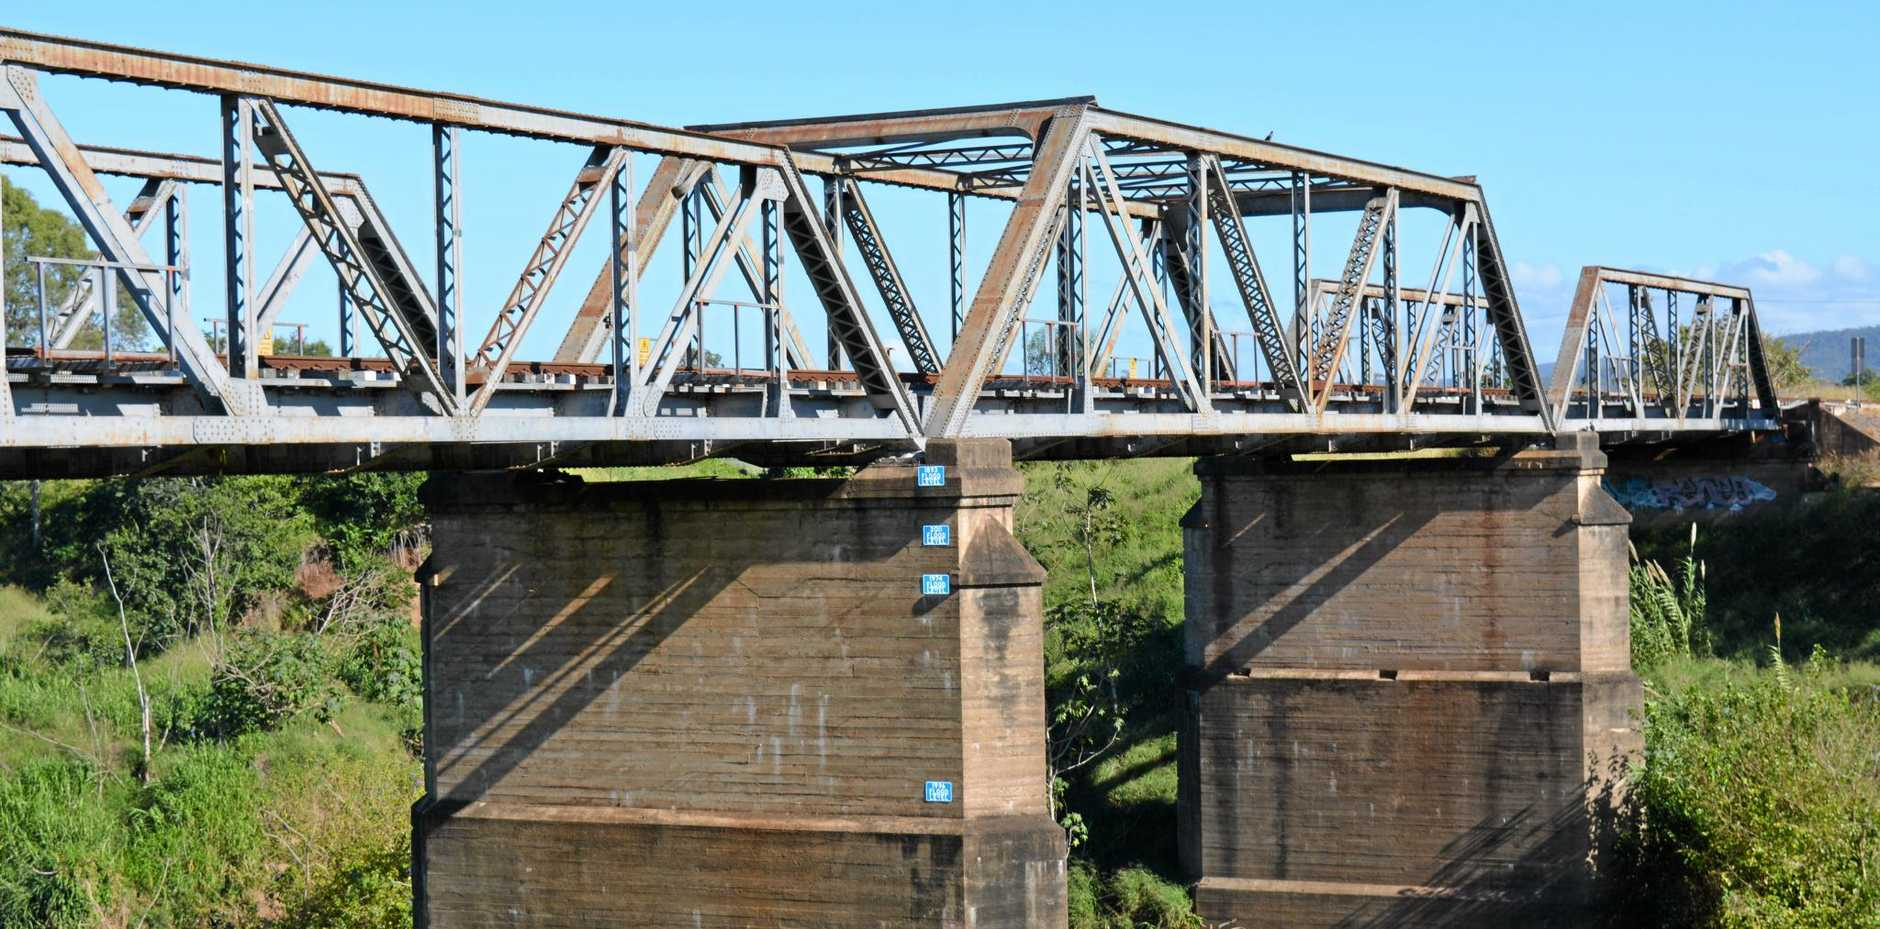 PROJECT: A $1.4 million strengthening project on the Lockyer Creek rail bridge in Gatton is now complete, improving the safety and reliability of the century-old structure.